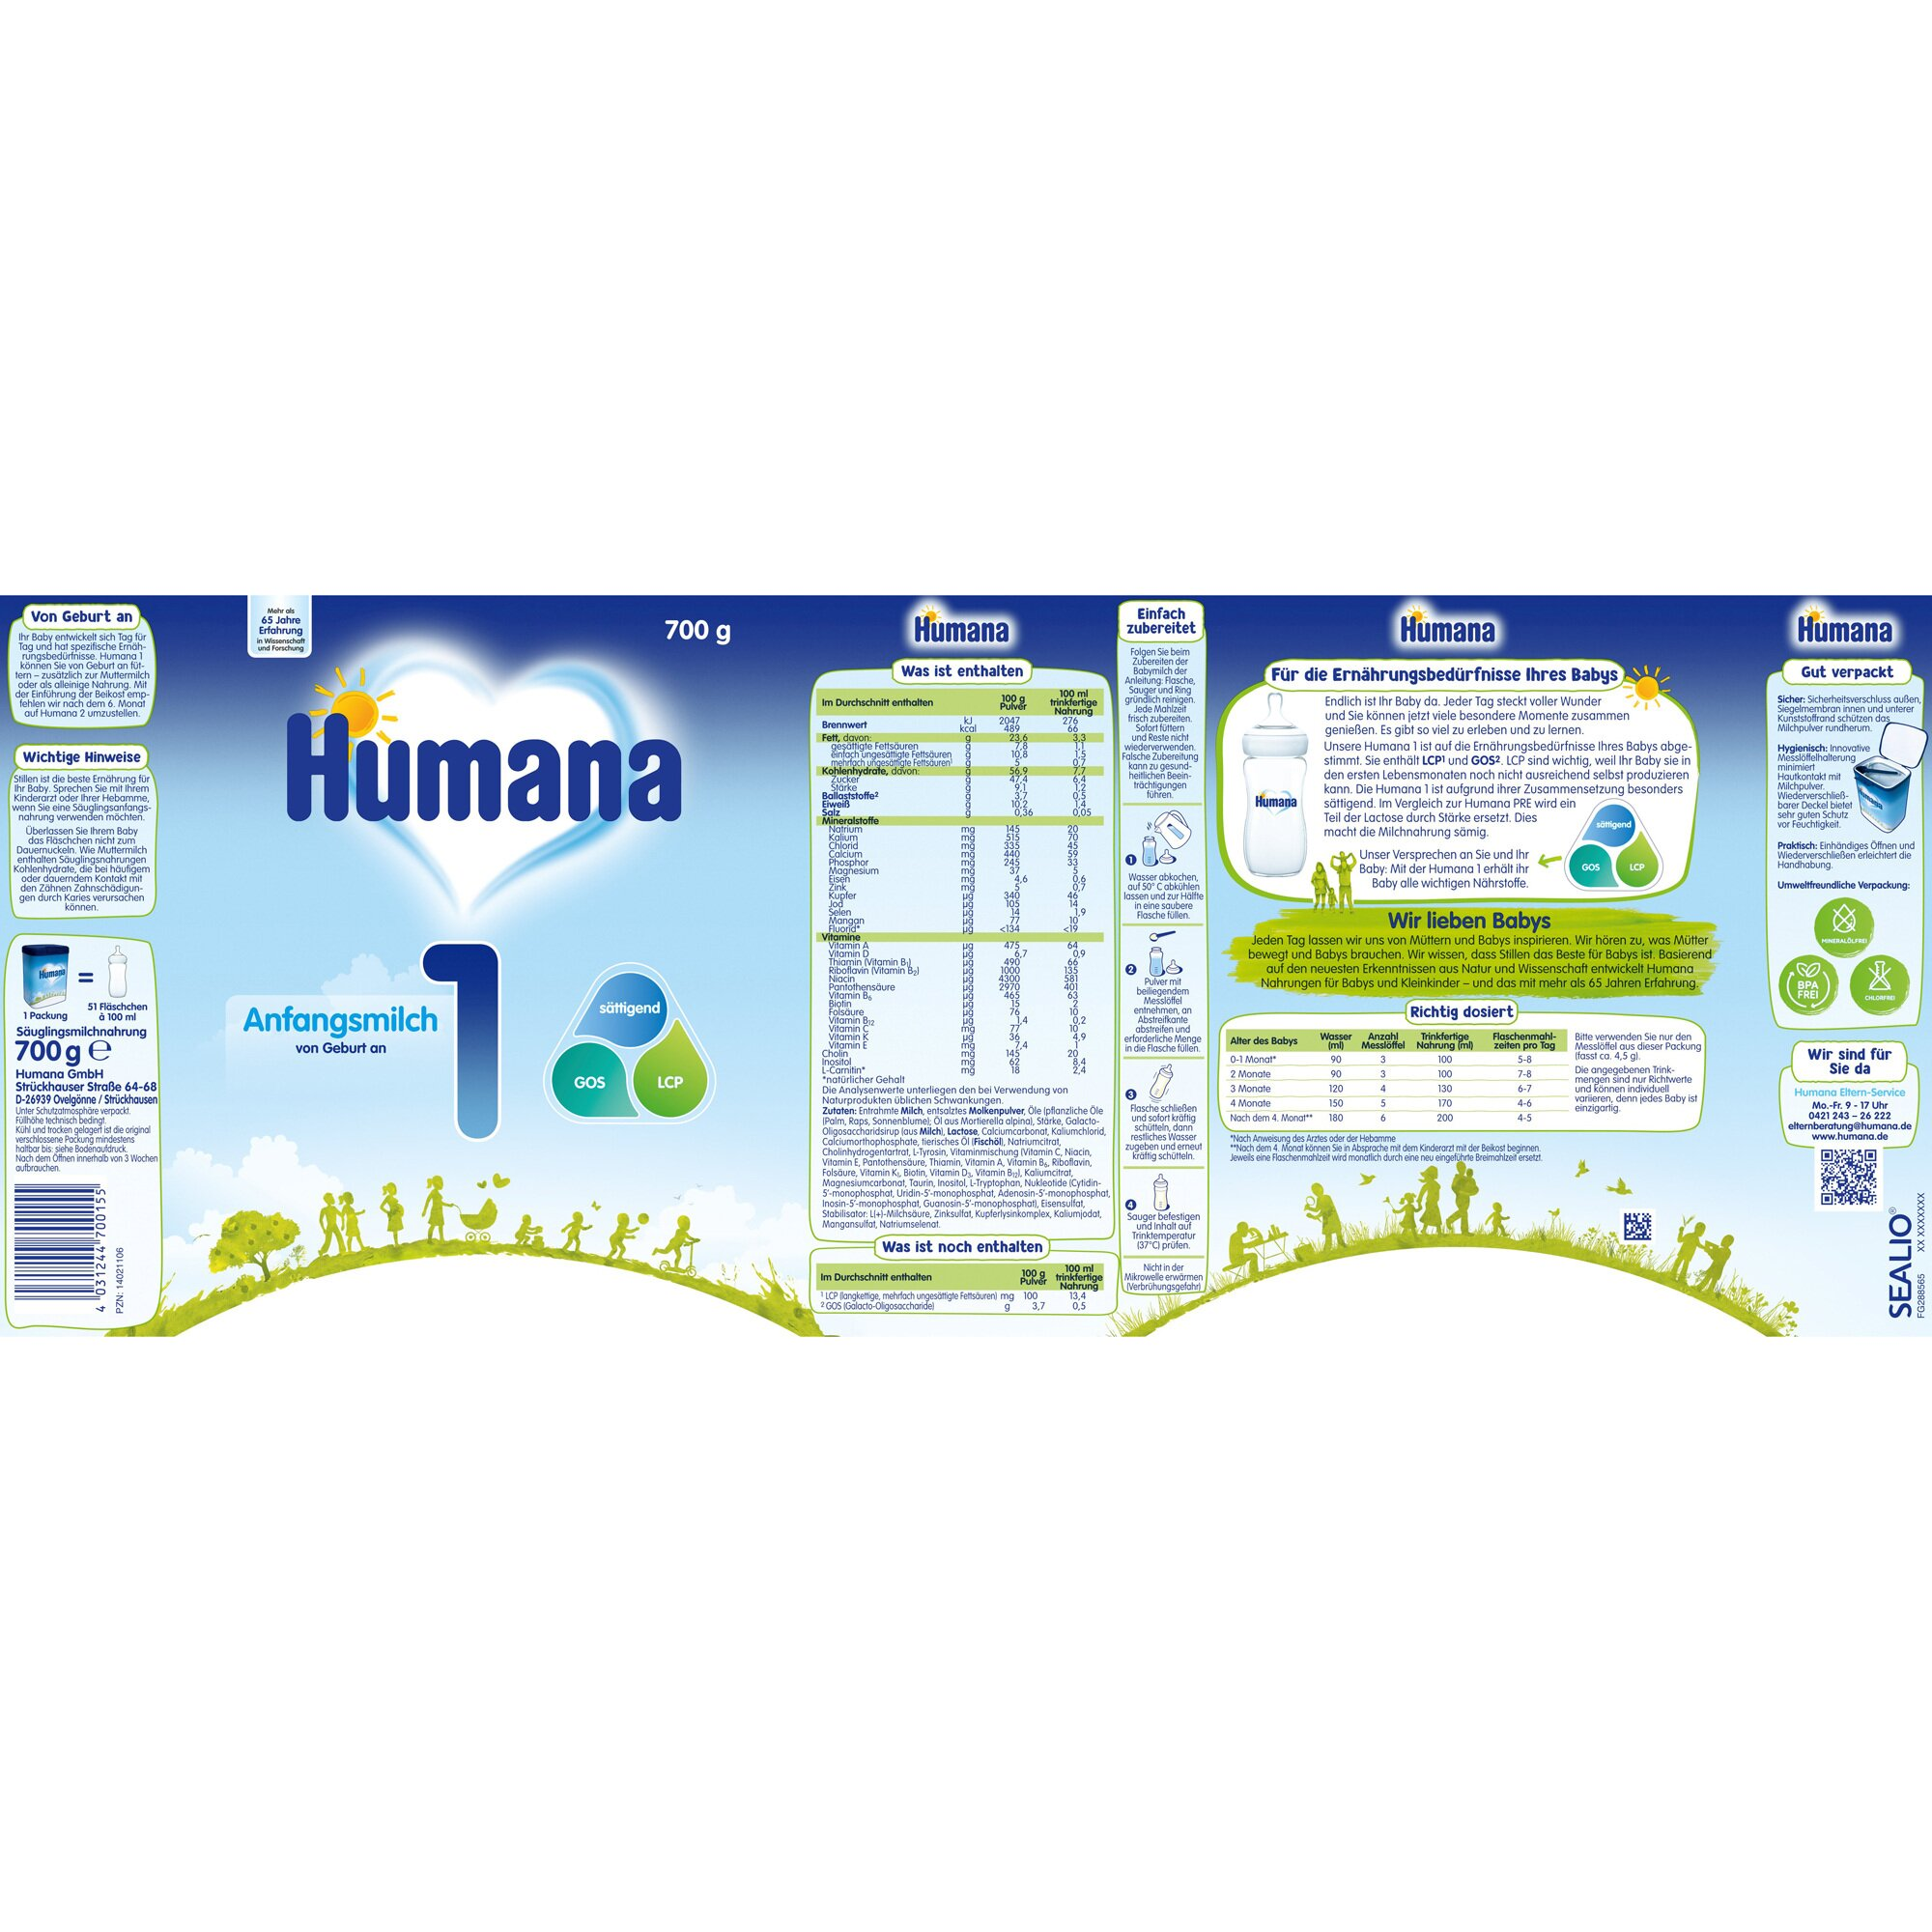 humana-anfangsmilch-1-700g